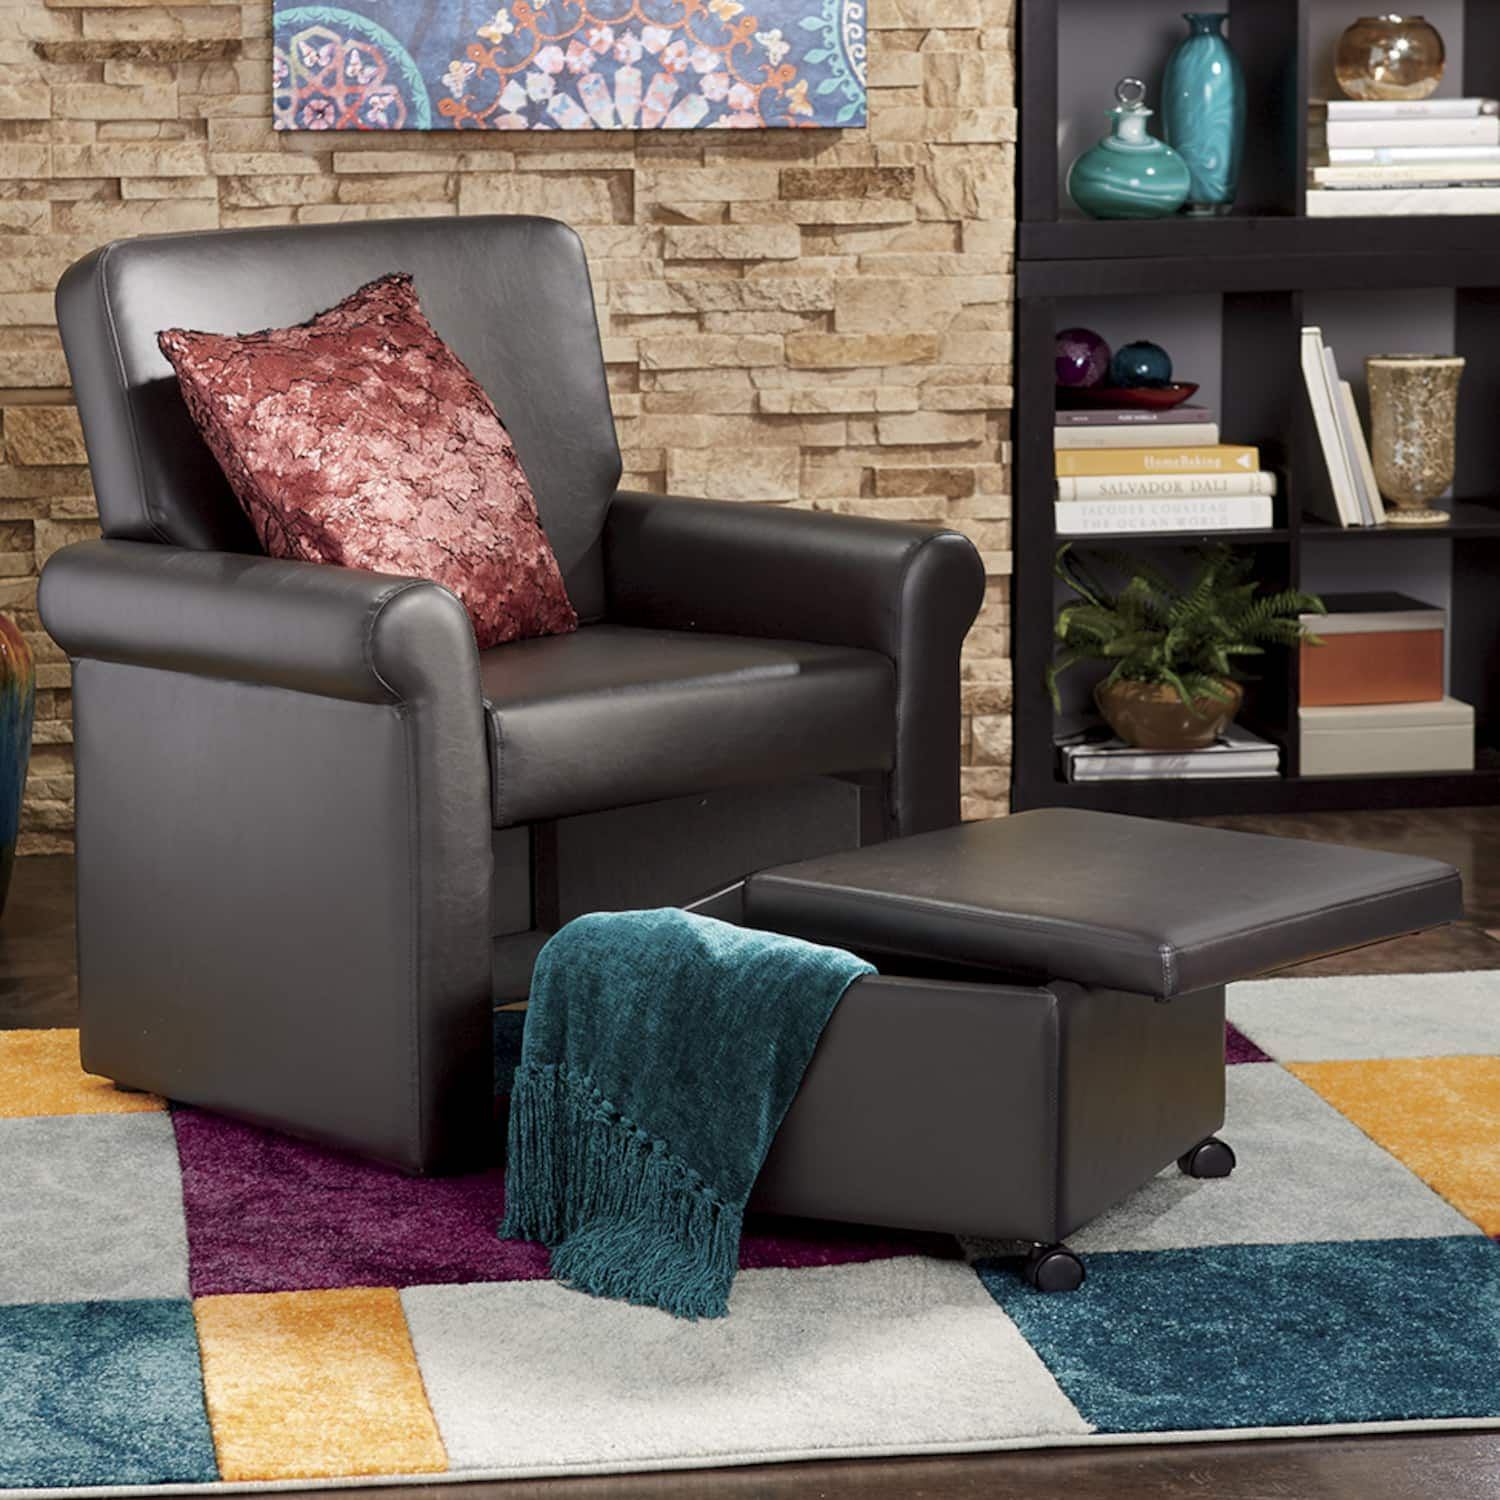 Image result for barrel chair with nesting ottoman chair